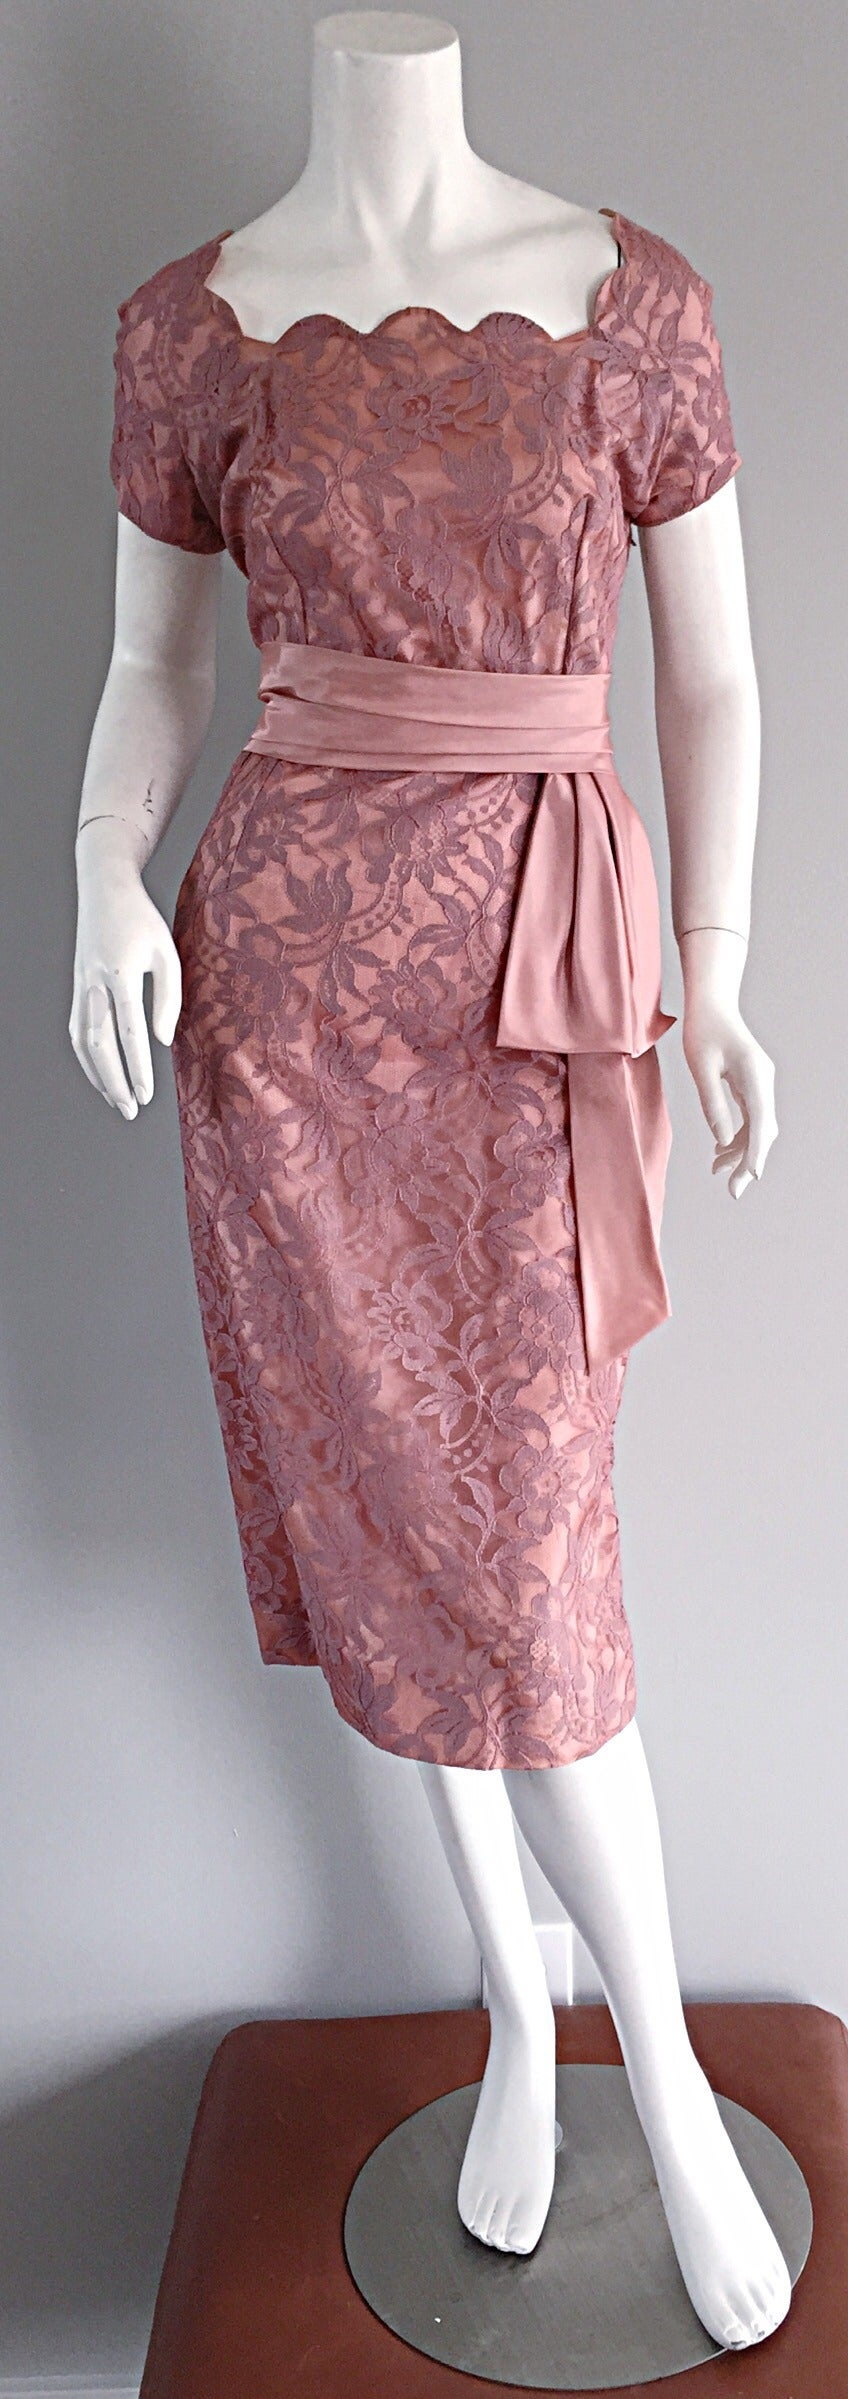 Beautiful Vintage 1950s 50s Pink Lace Wiggle Dress w/ Scalloped Edges 9